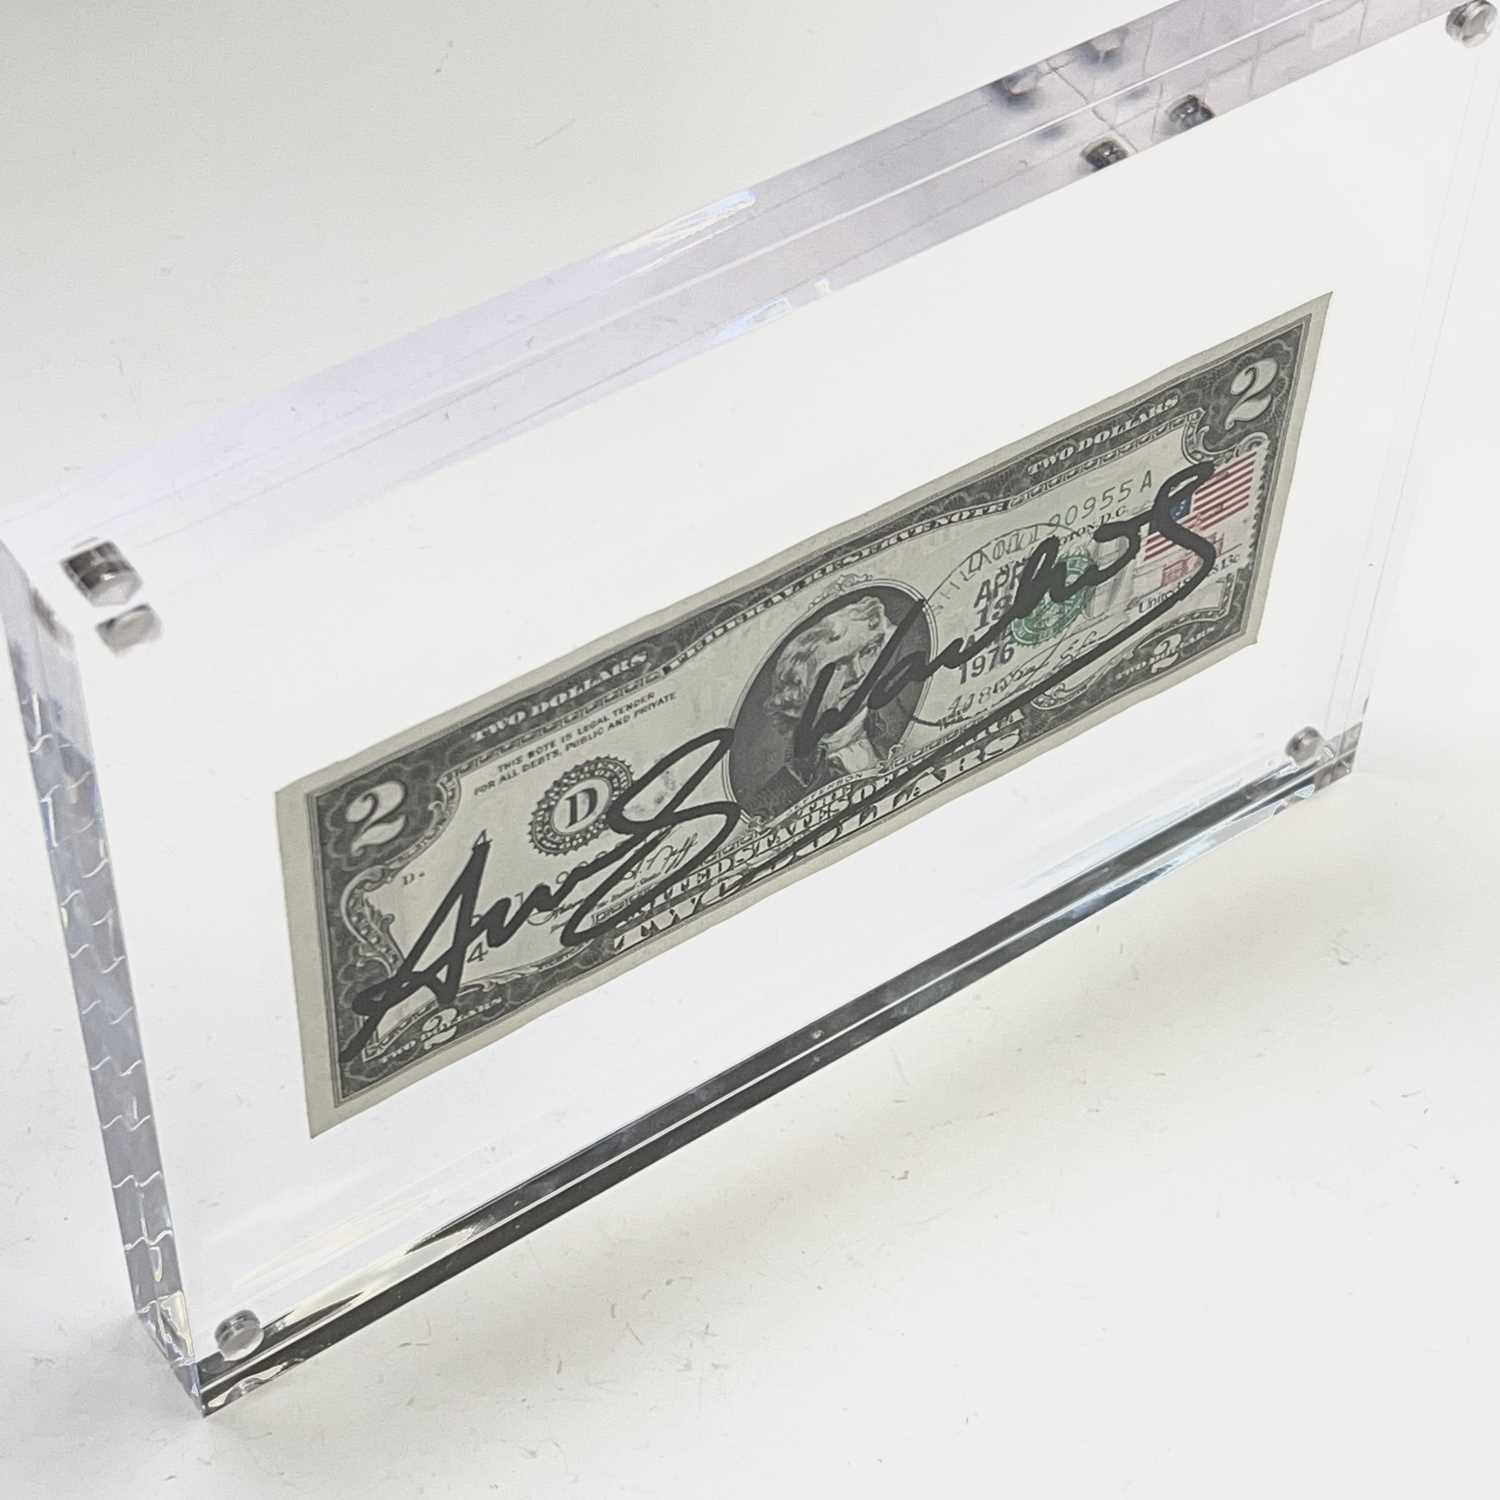 After Andy Warhol, a two-dollar banknote, bears signature, together with accompanying paperwork. - Image 7 of 10